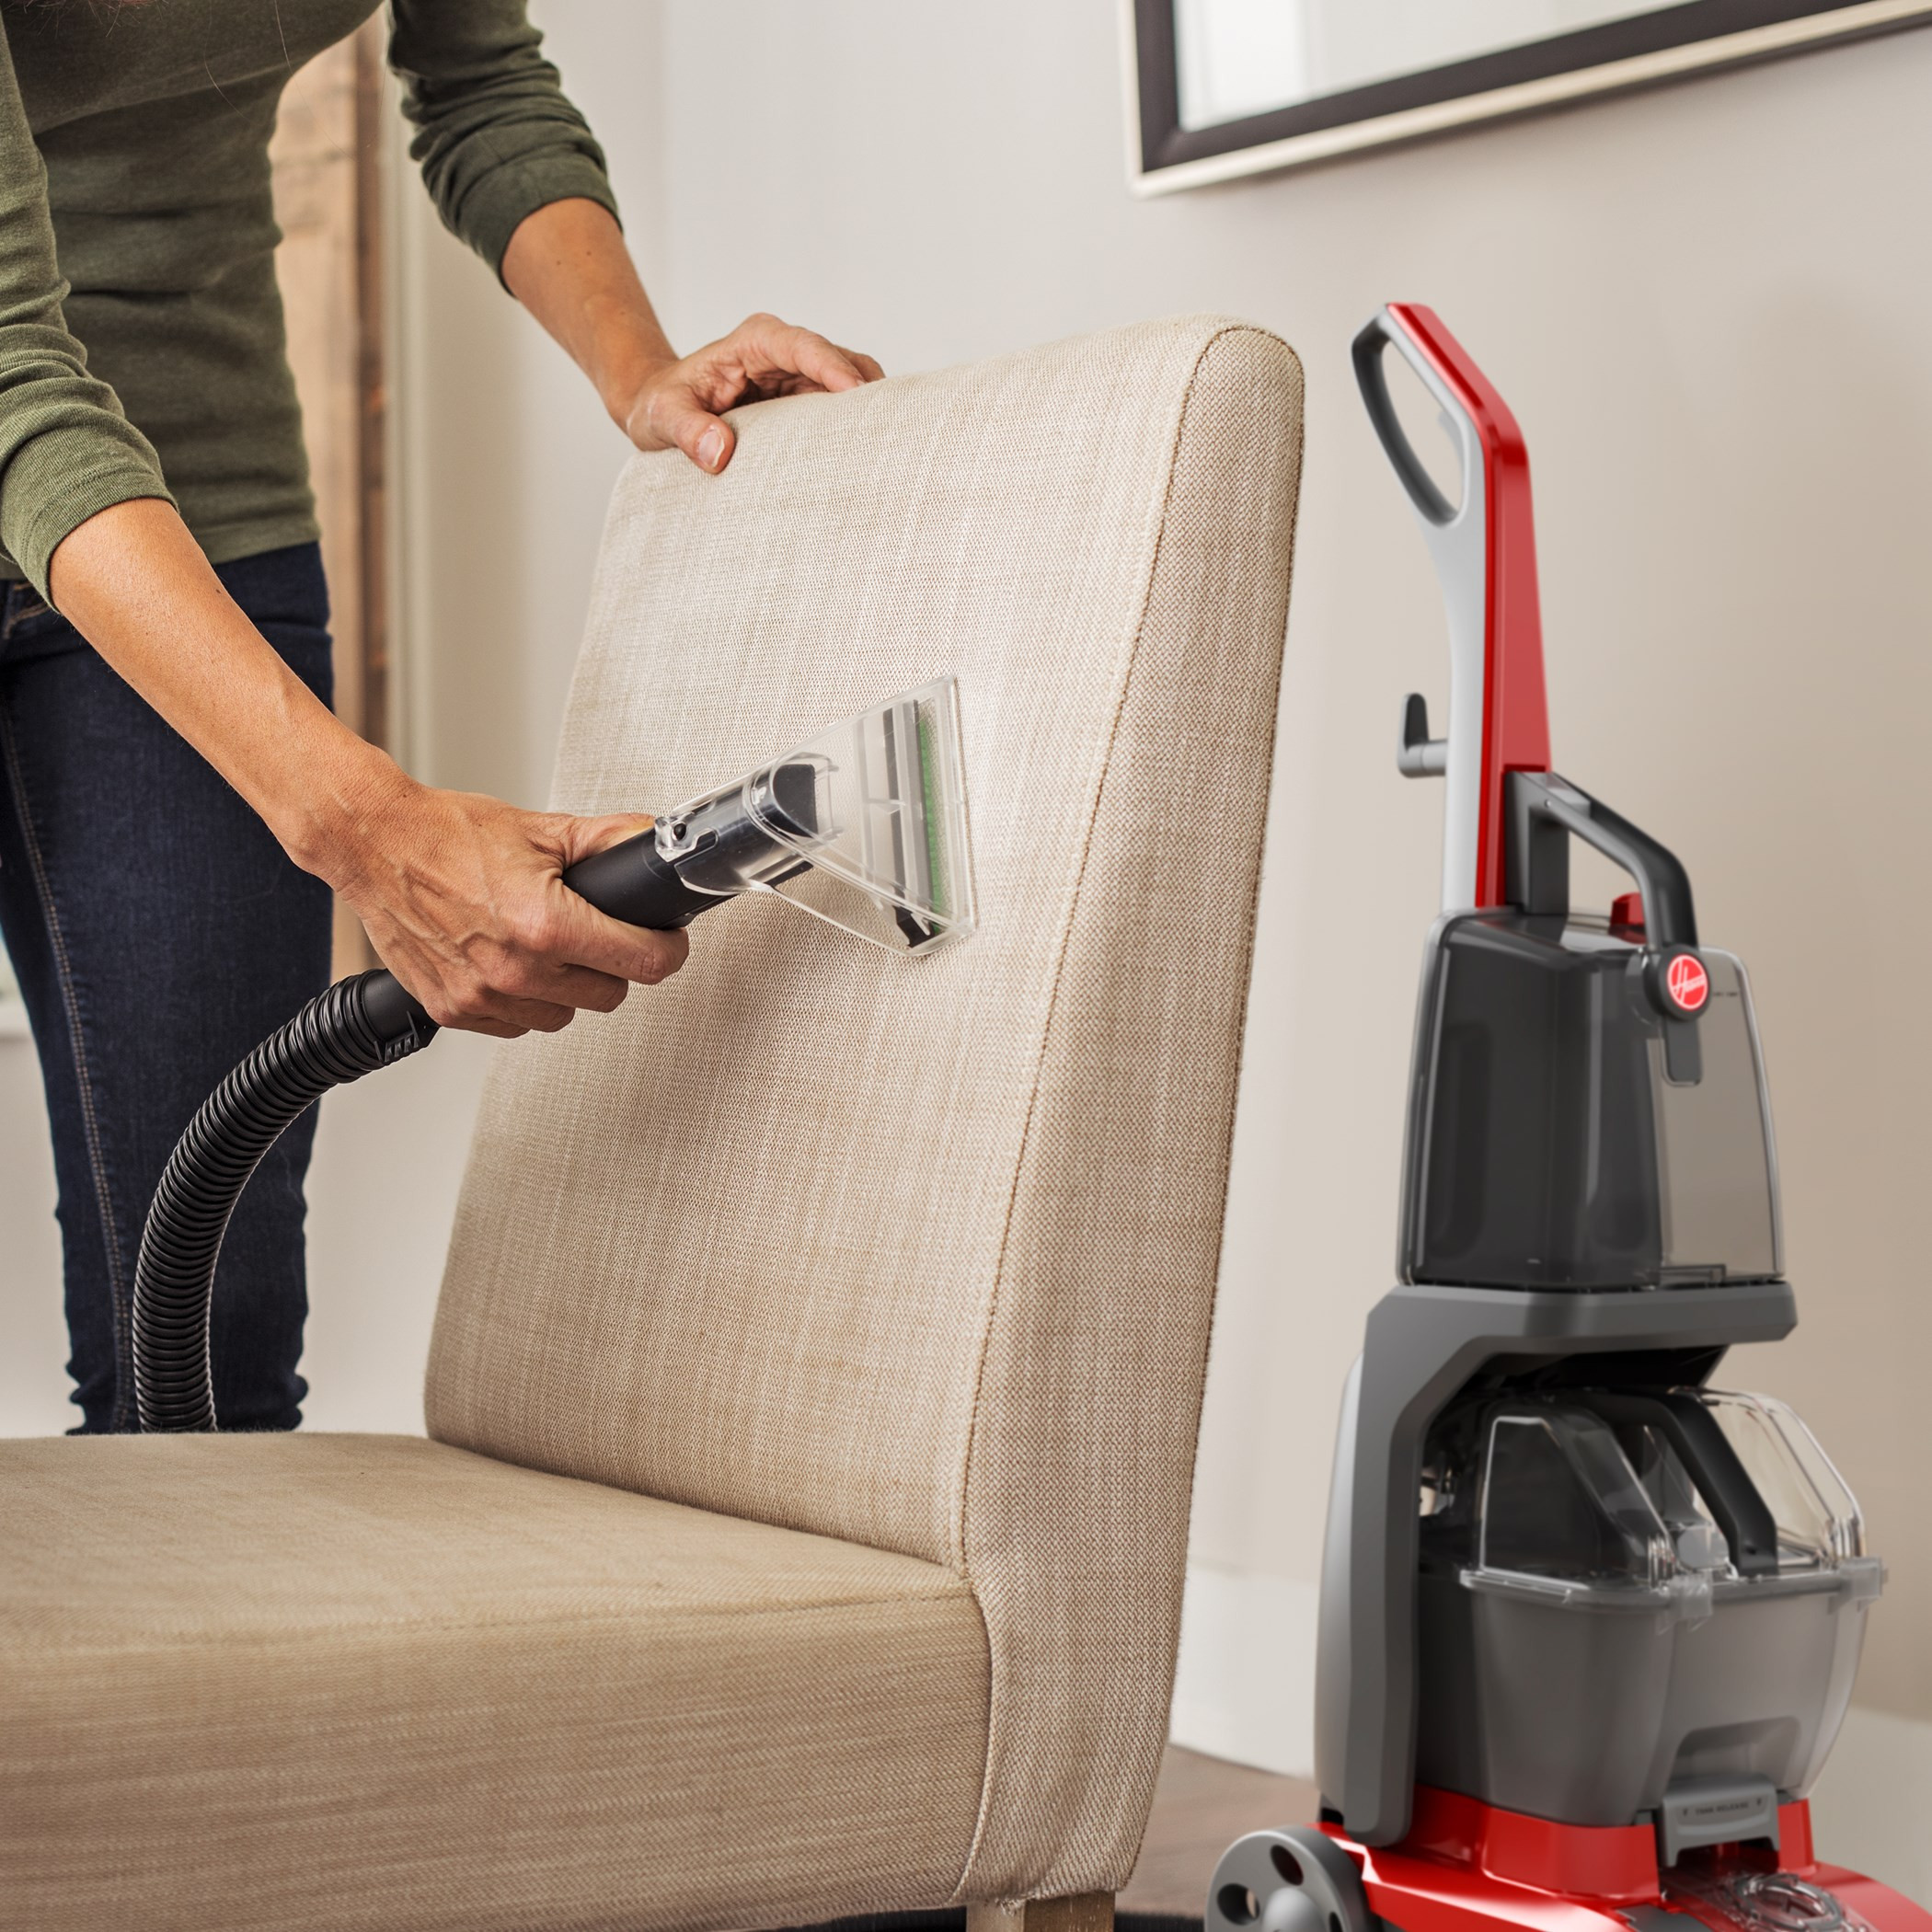 hardwood floor cleaning equipment of hoover power scrub carpet cleaner w spinscrub technology fh50135 intended for hoover power scrub carpet cleaner w spinscrub technology fh50135 walmart com